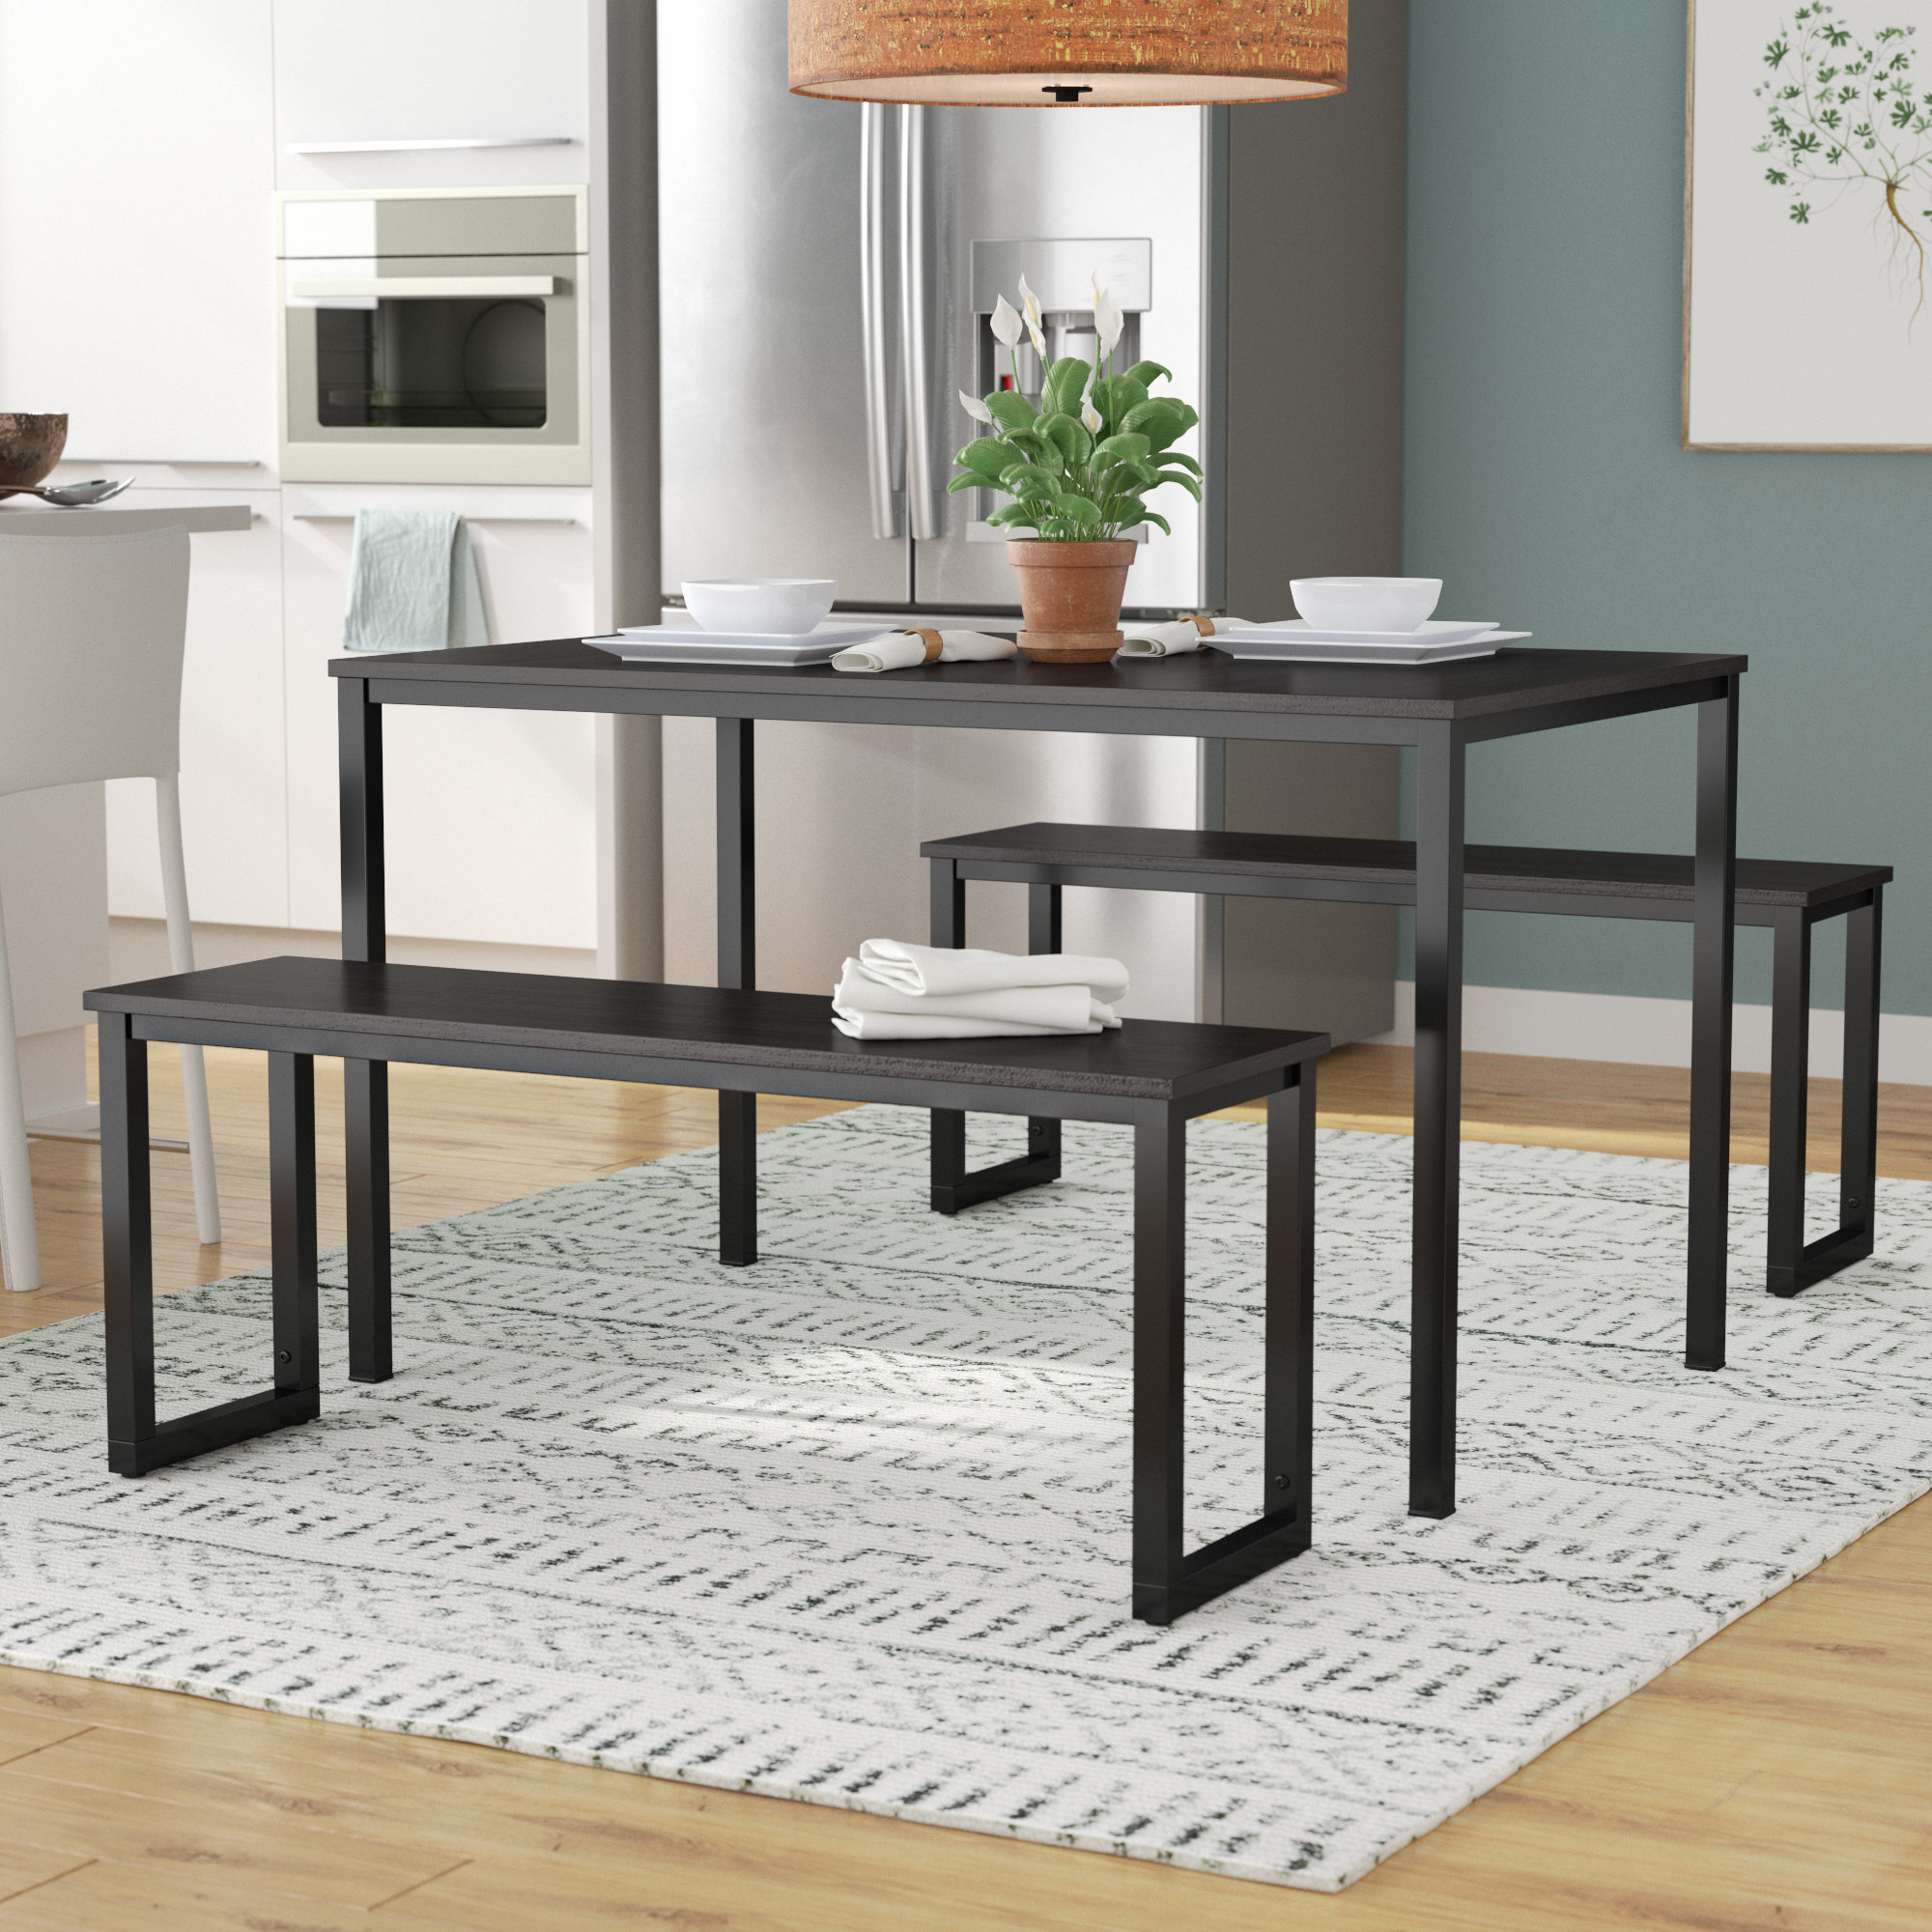 Frida 3 Piece Dining Table Set Within Best And Newest Frida 3 Piece Dining Table Sets (View 2 of 20)